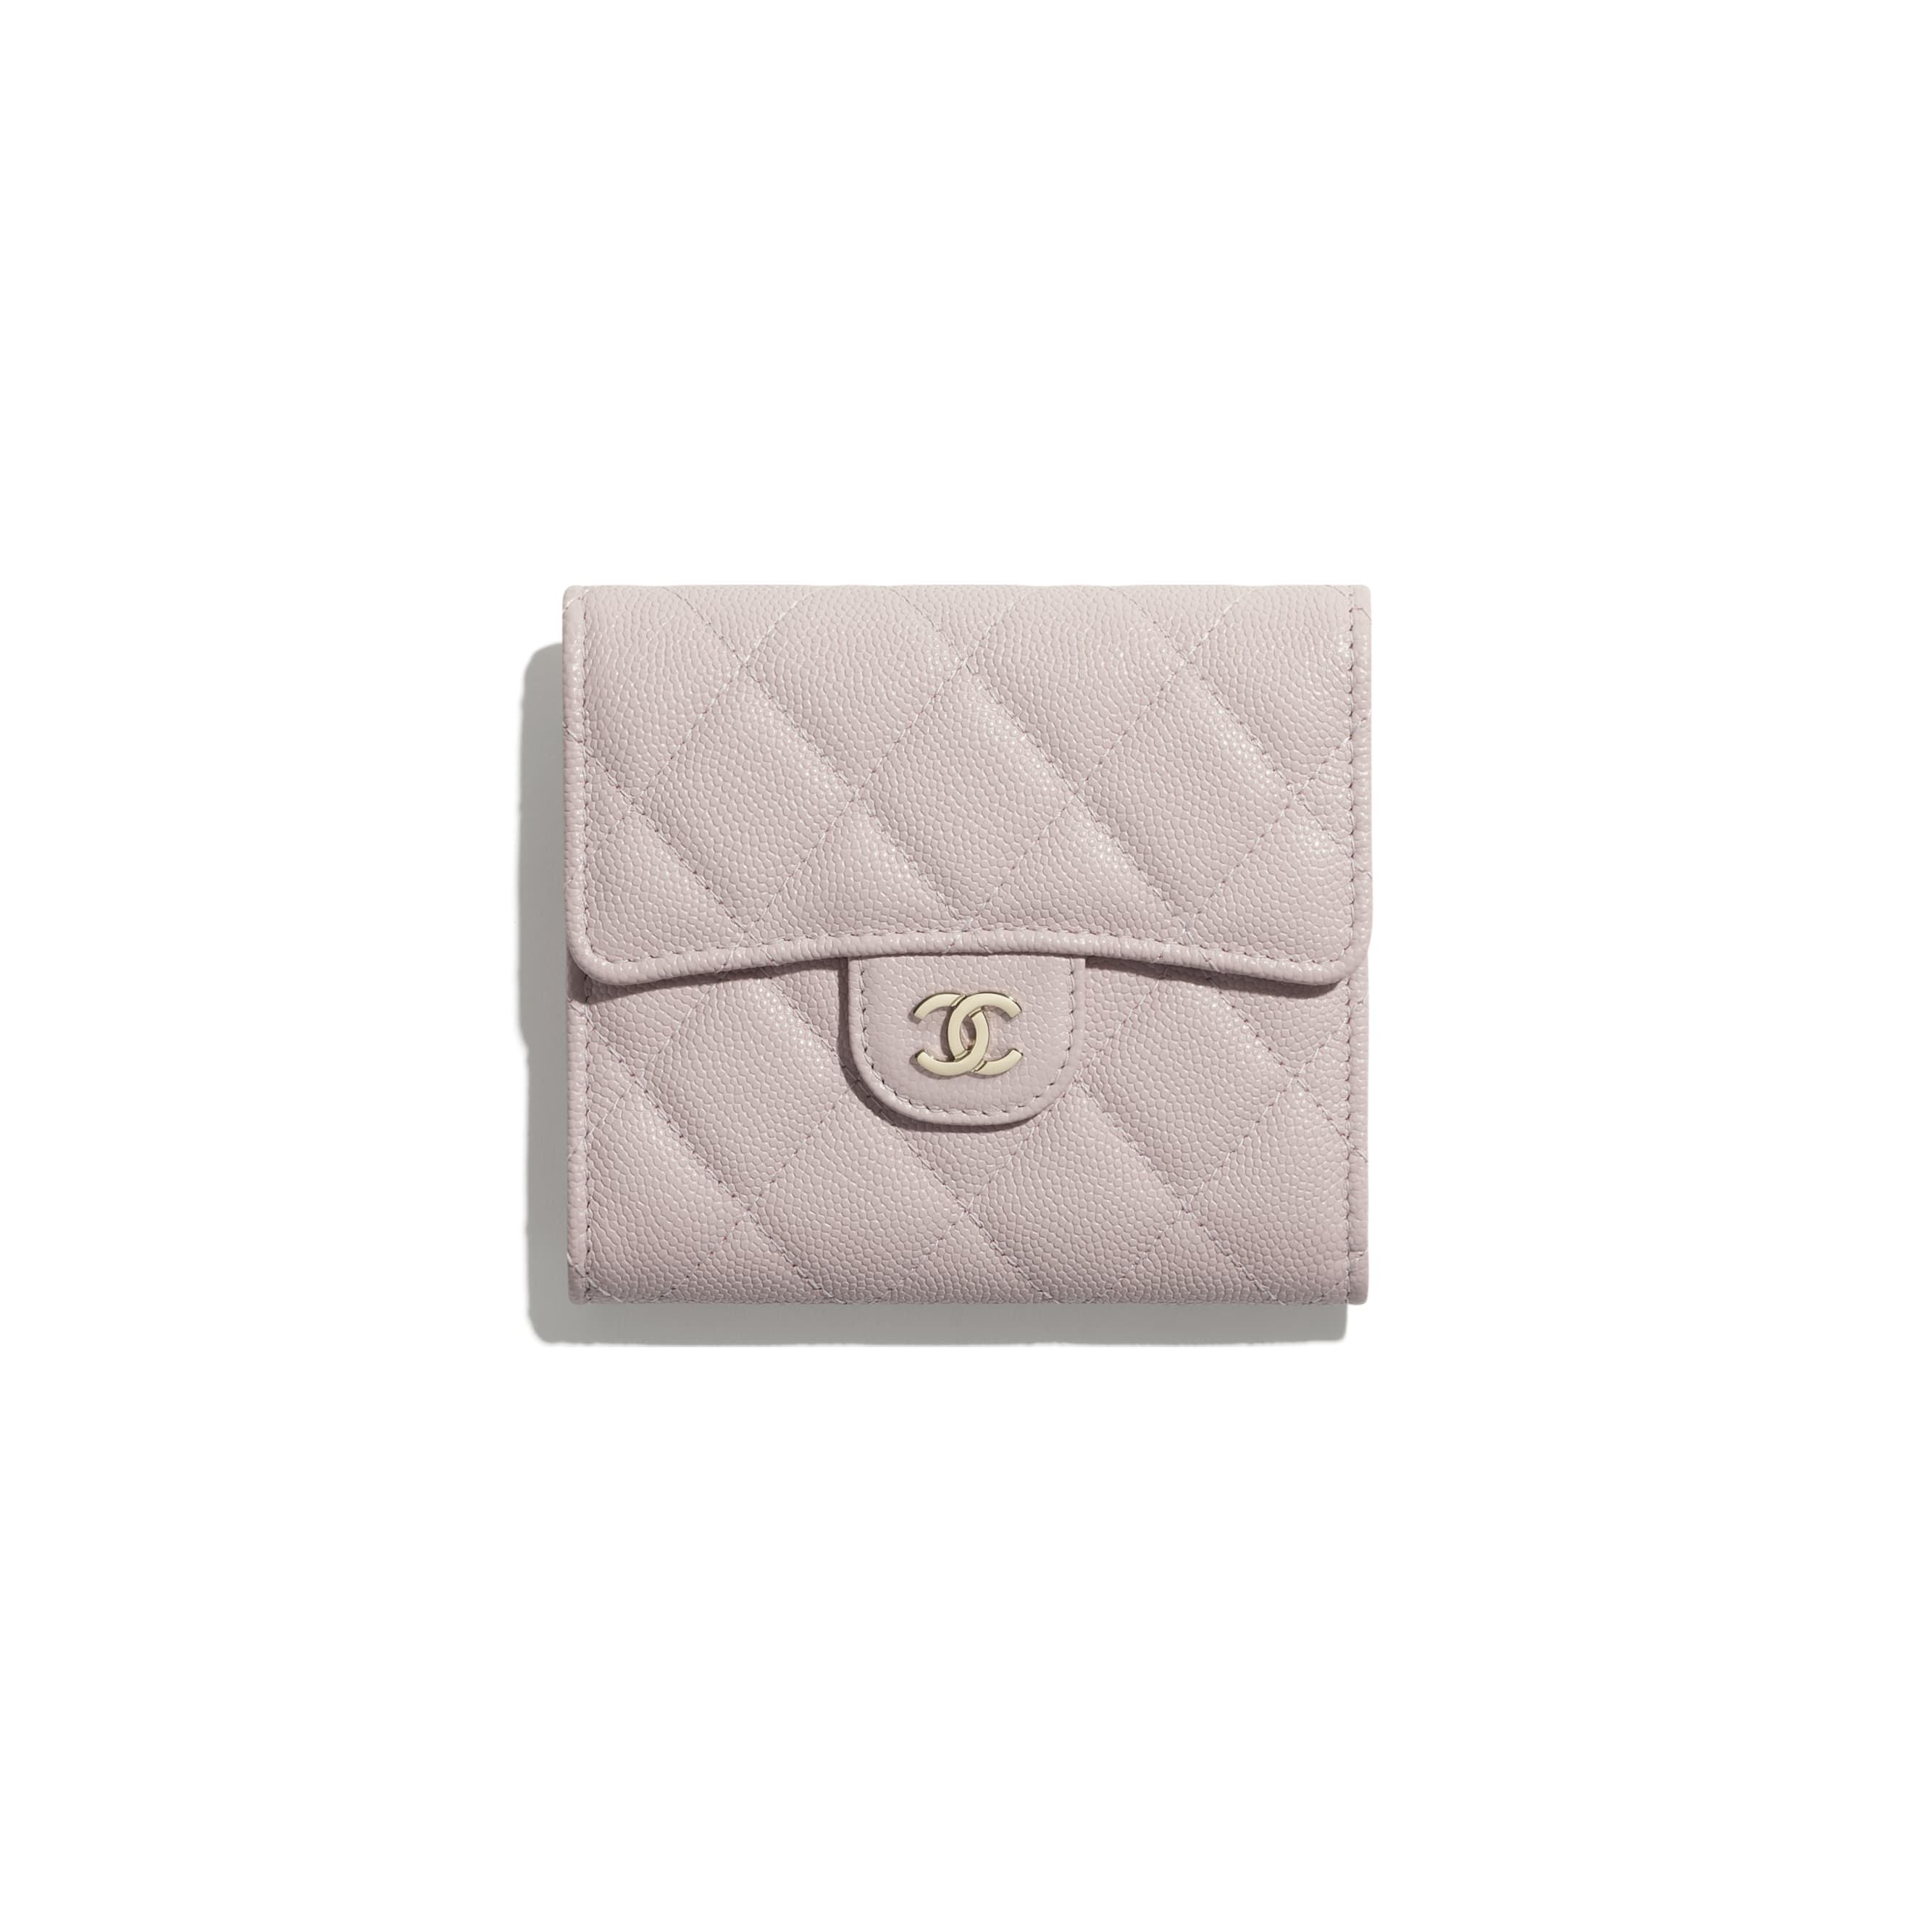 Classic Small Flap Wallet - Light Pink - Grained Calfskin & Gold-Tone Metal - CHANEL - Default view - see standard sized version